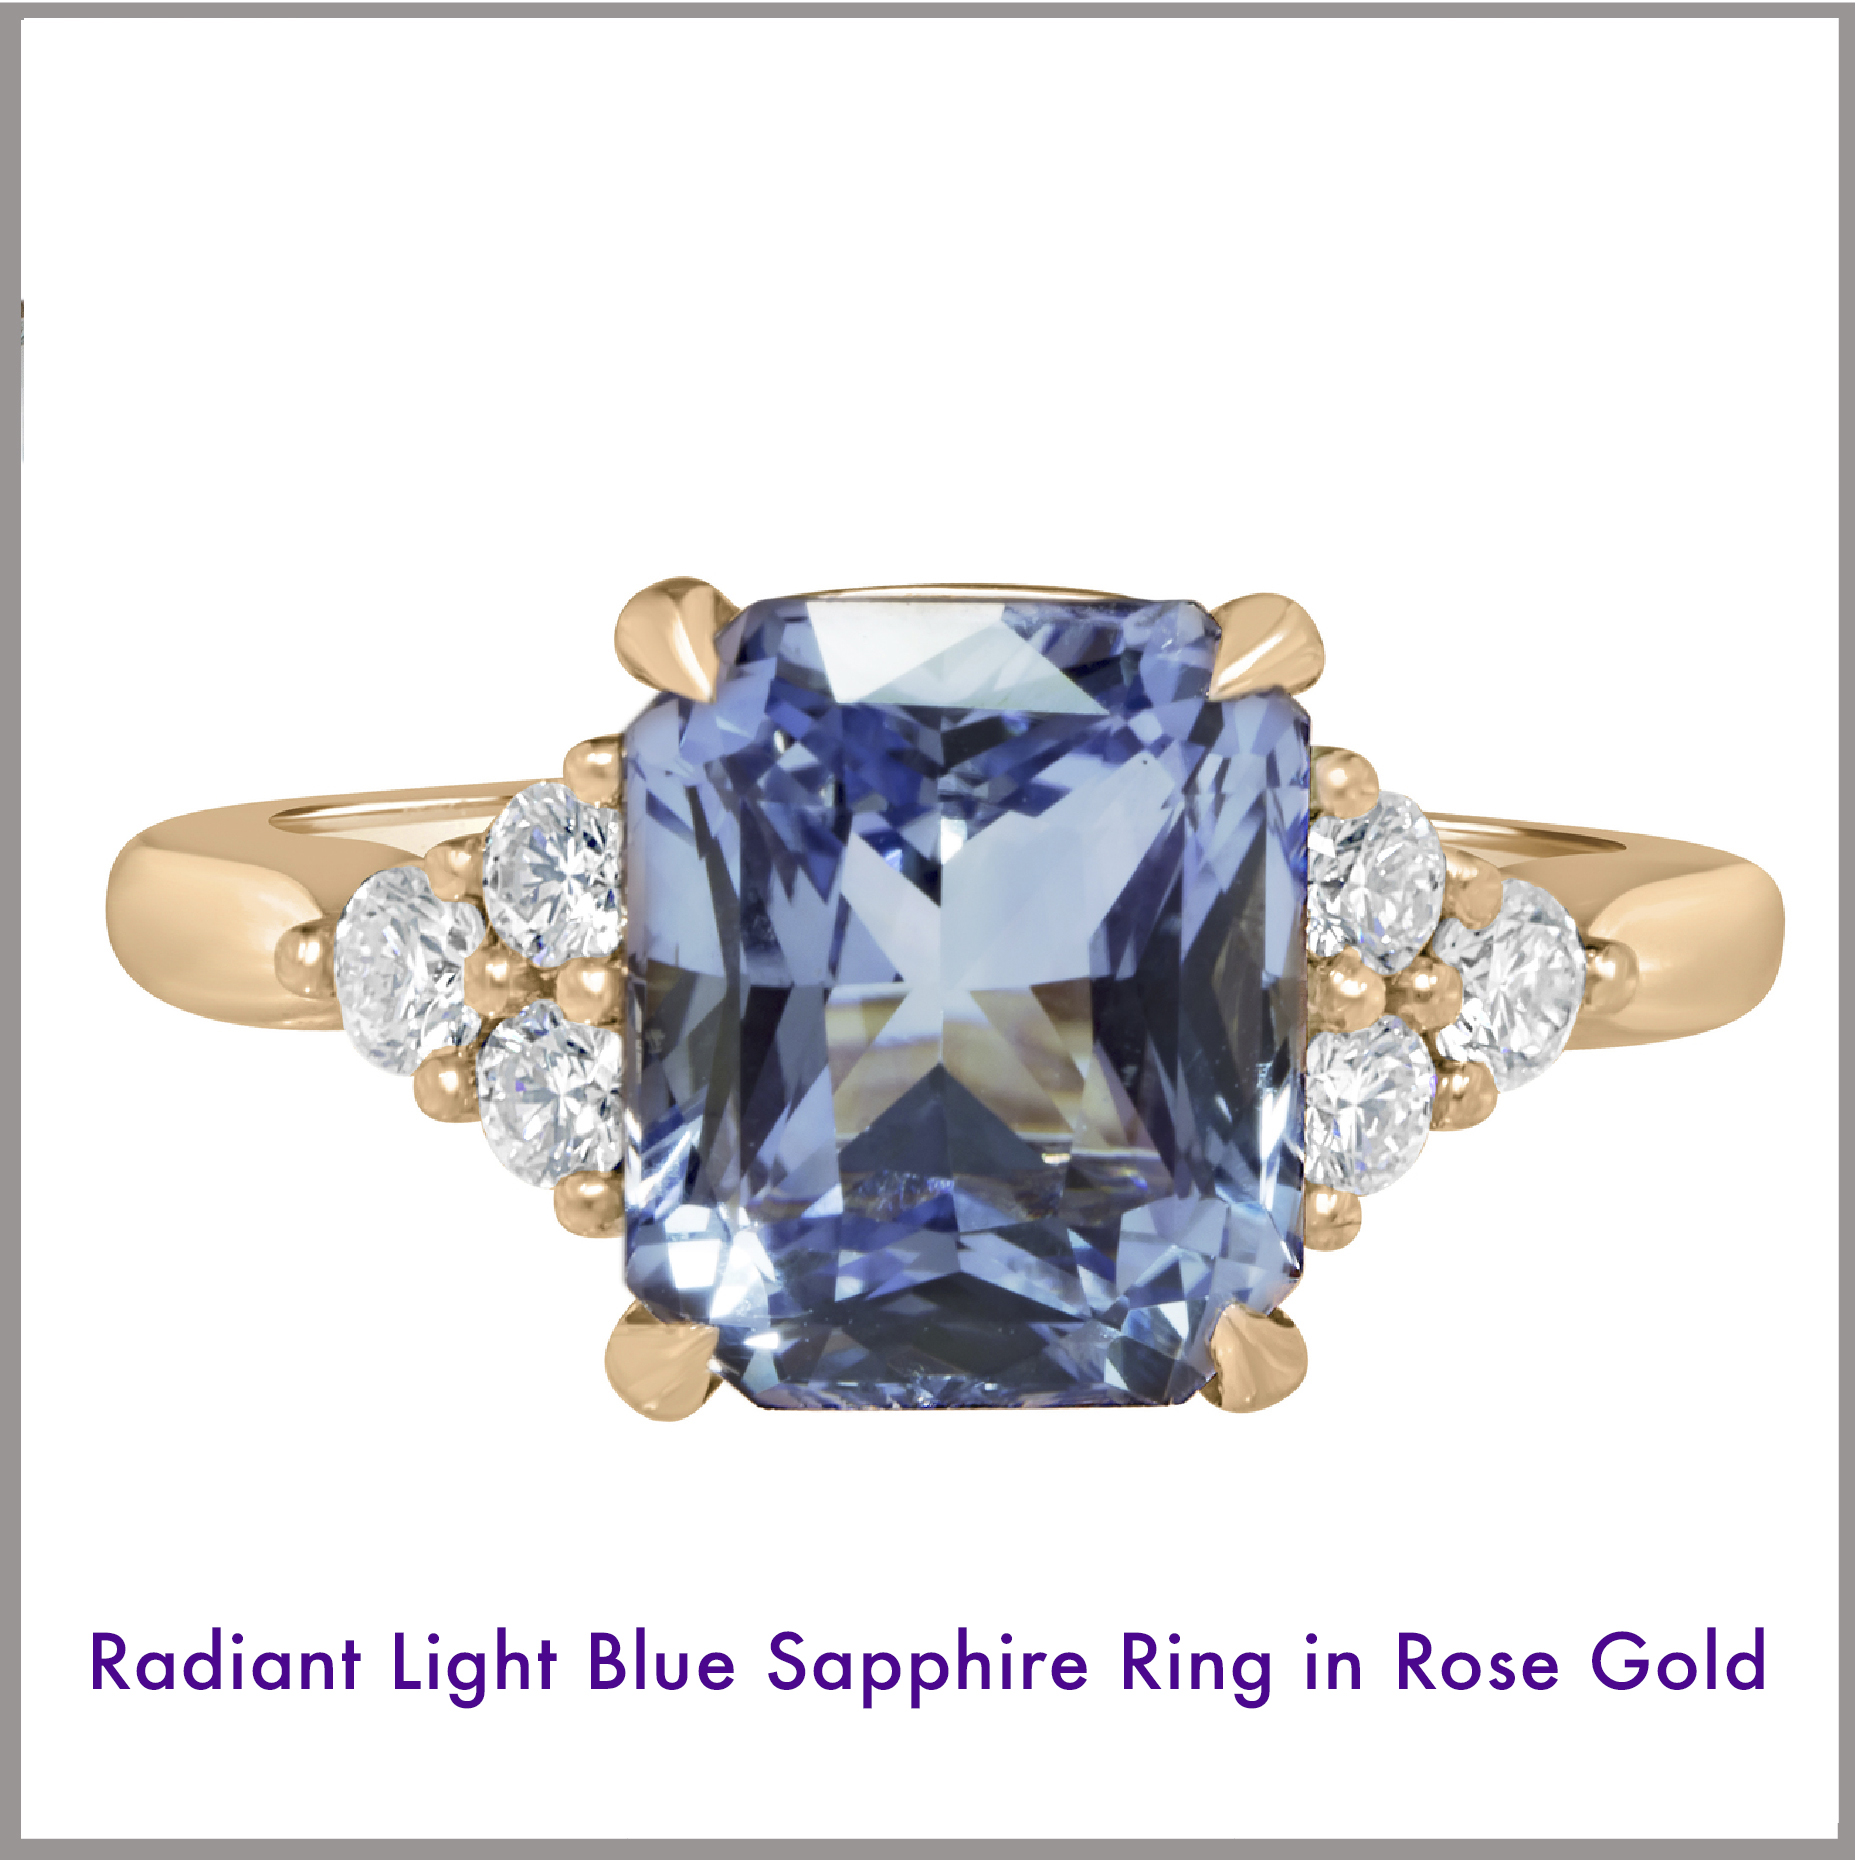 Radiant Light Blue Sapphire Ring in Rose Gold